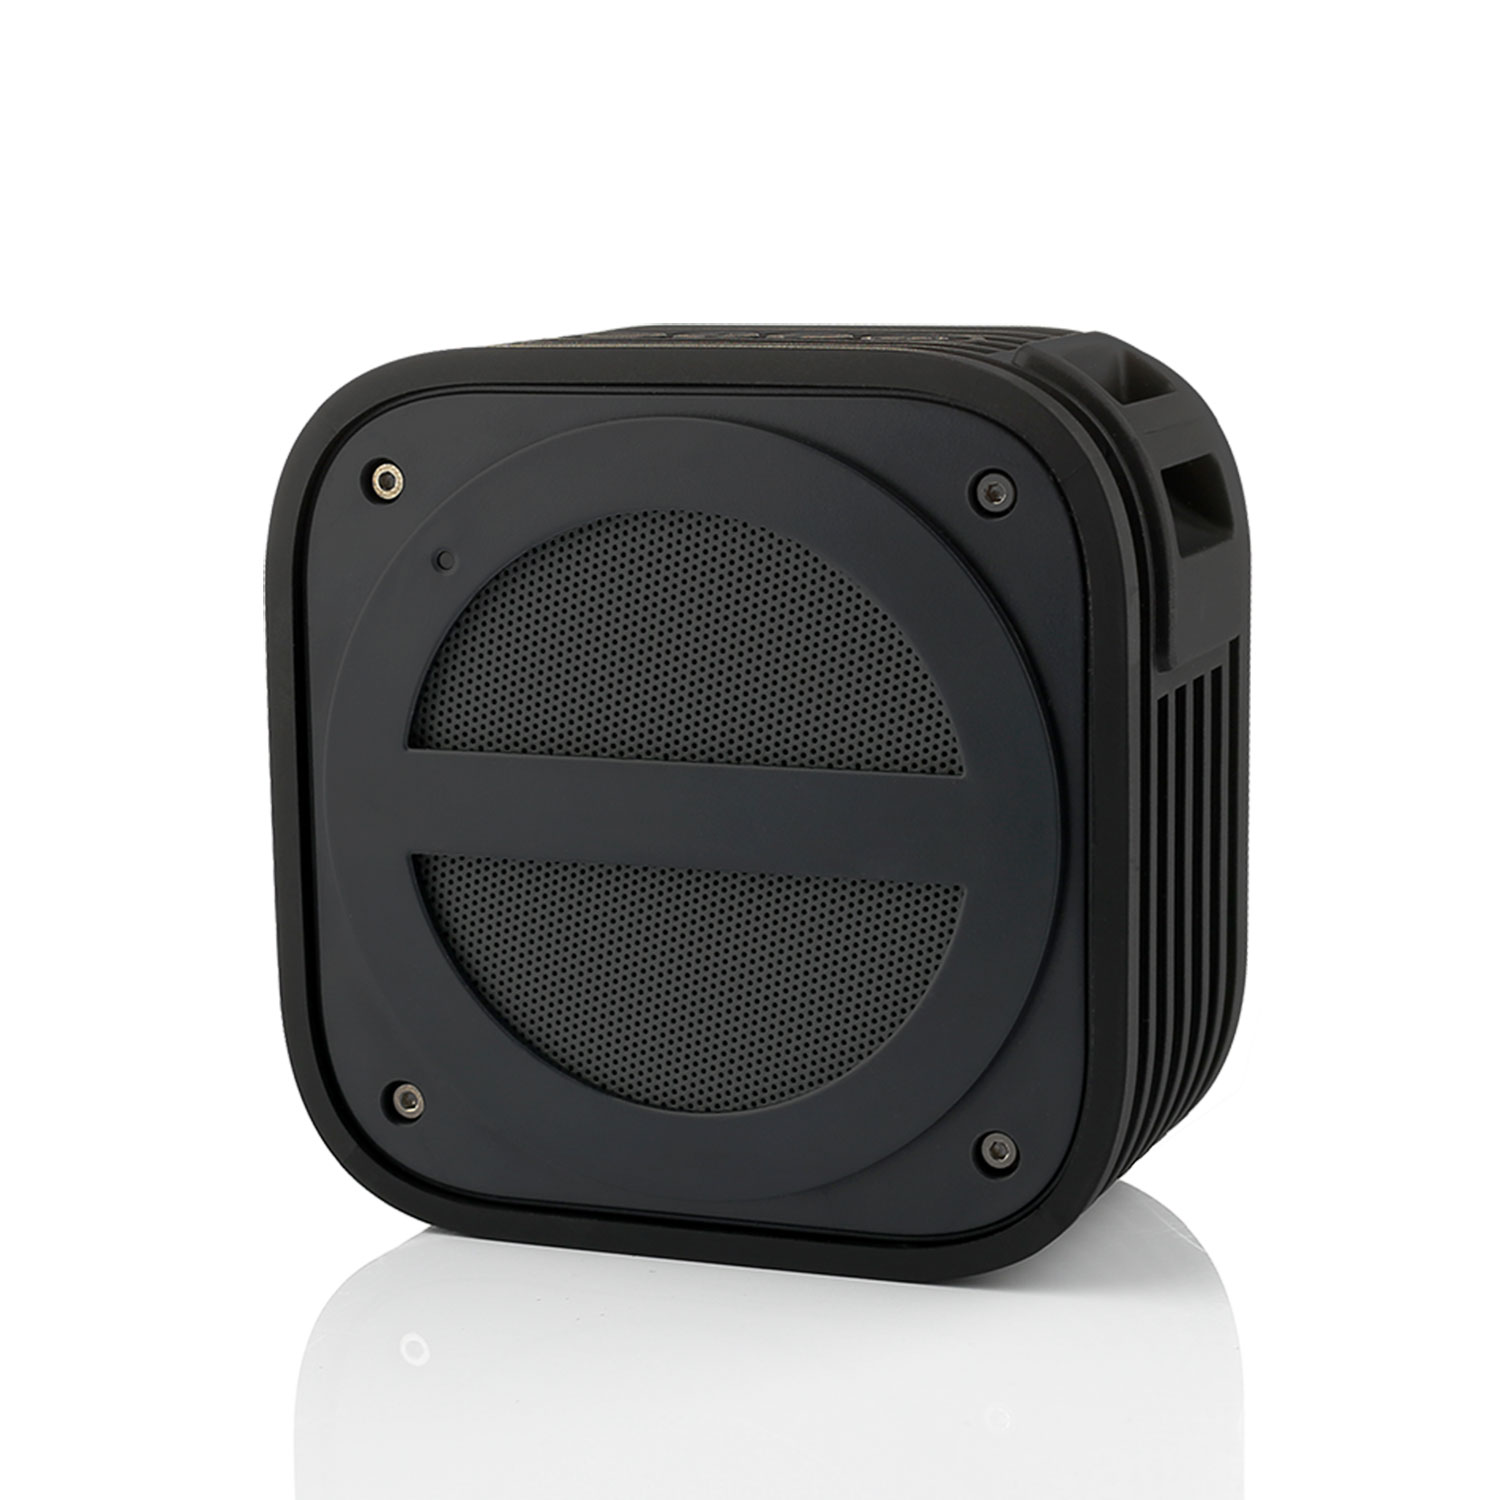 Outdoors bluetooth speaker S101